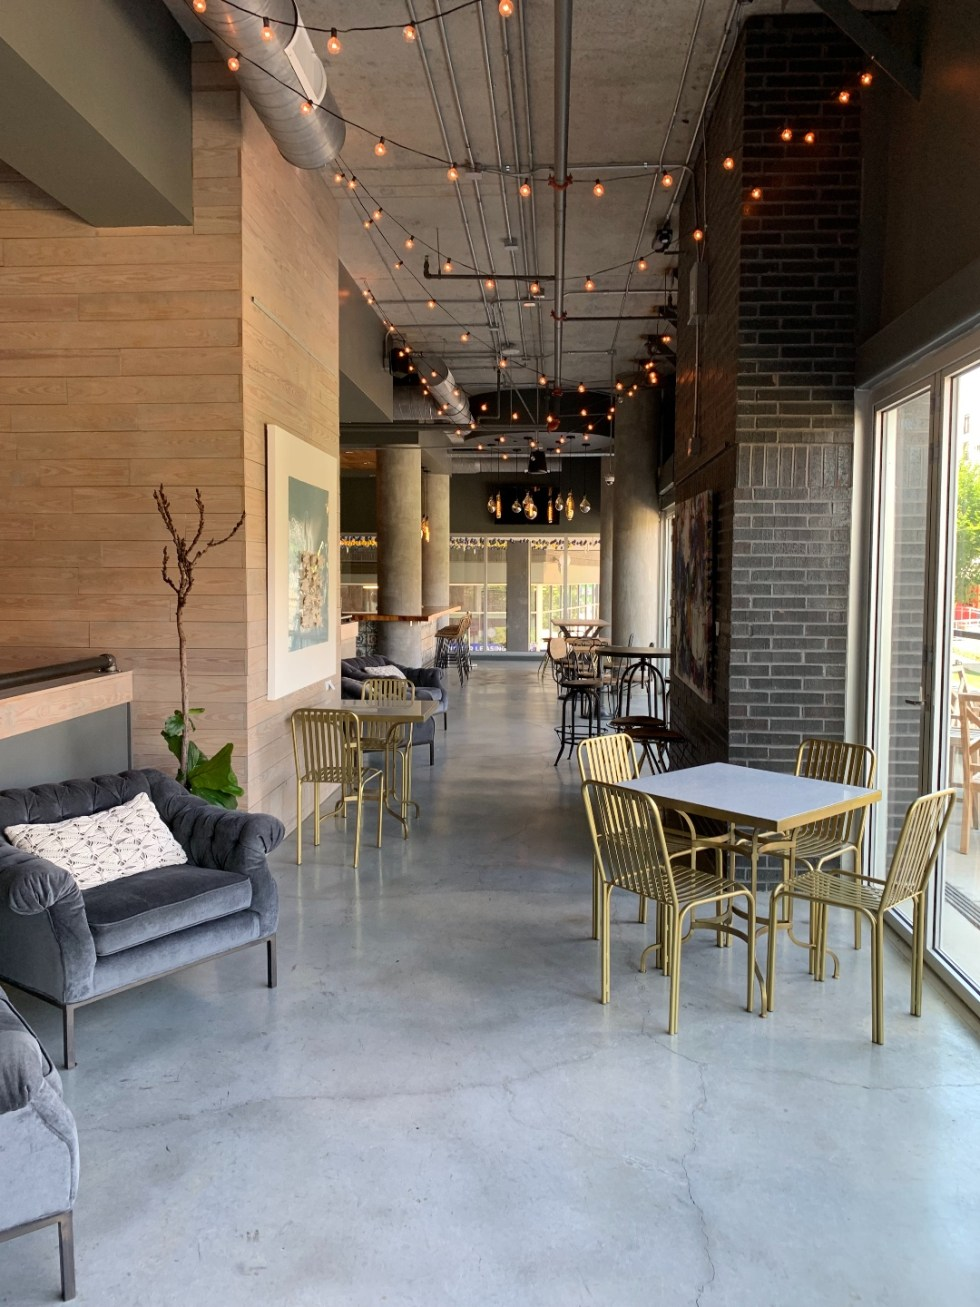 The Ultimate Girls' Day Out in Raleigh - I'm Fixin' To - @imfixintoblog | Girls Day Out In Raleigh by popular NC lifestyle blog, I'm Fixin' To: image of a restaurant with bistro lights, grey velvet tuft chairs, and tables with gold metal chairs.